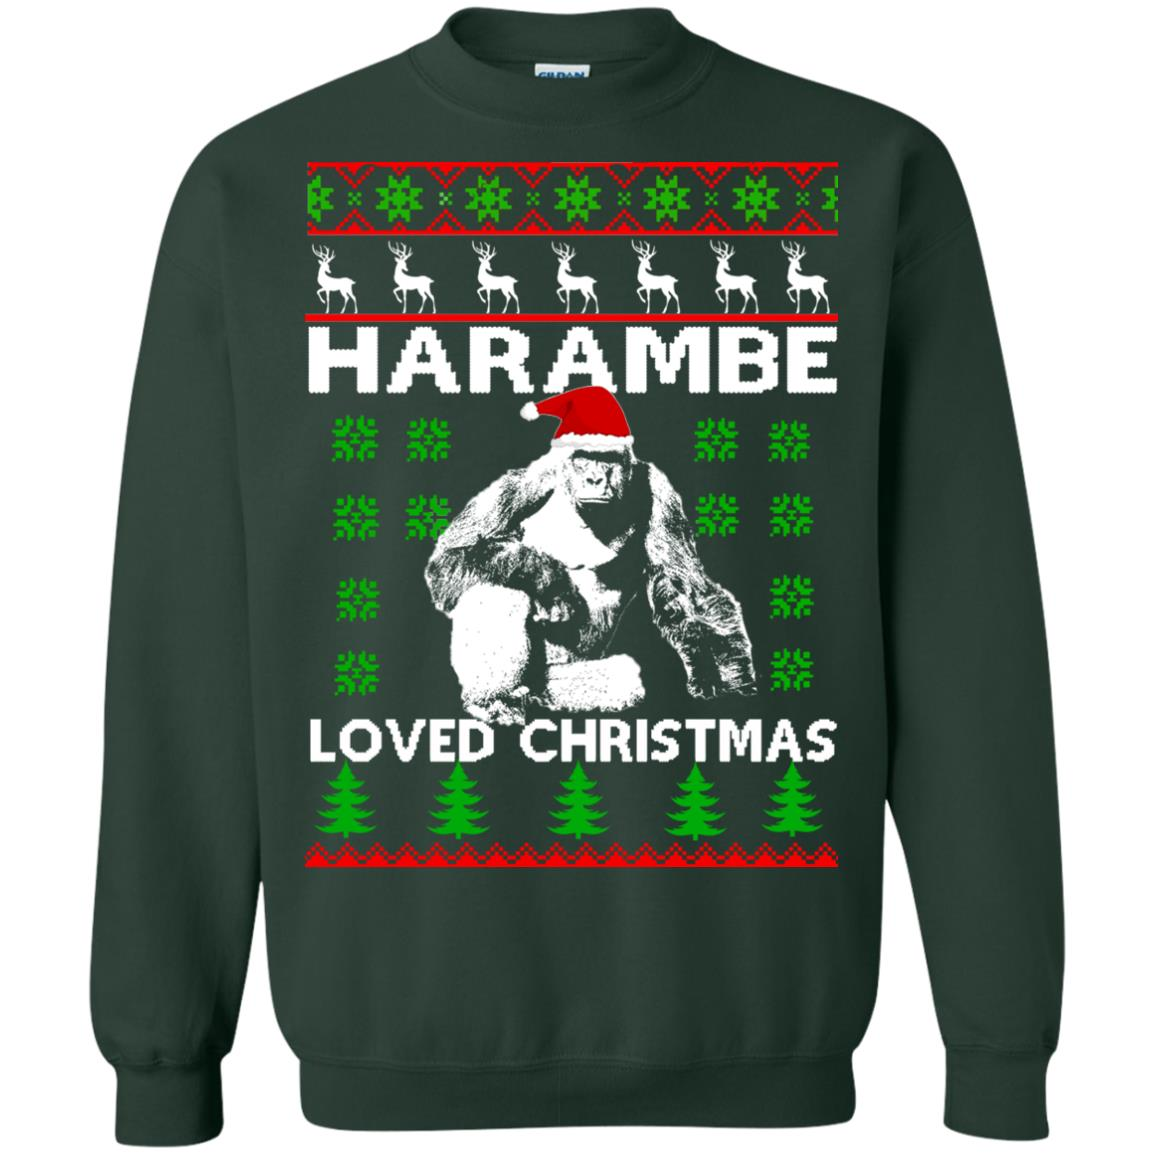 image 817 - Harambe Loved Christmas Sweater, Shirt, Hoodie